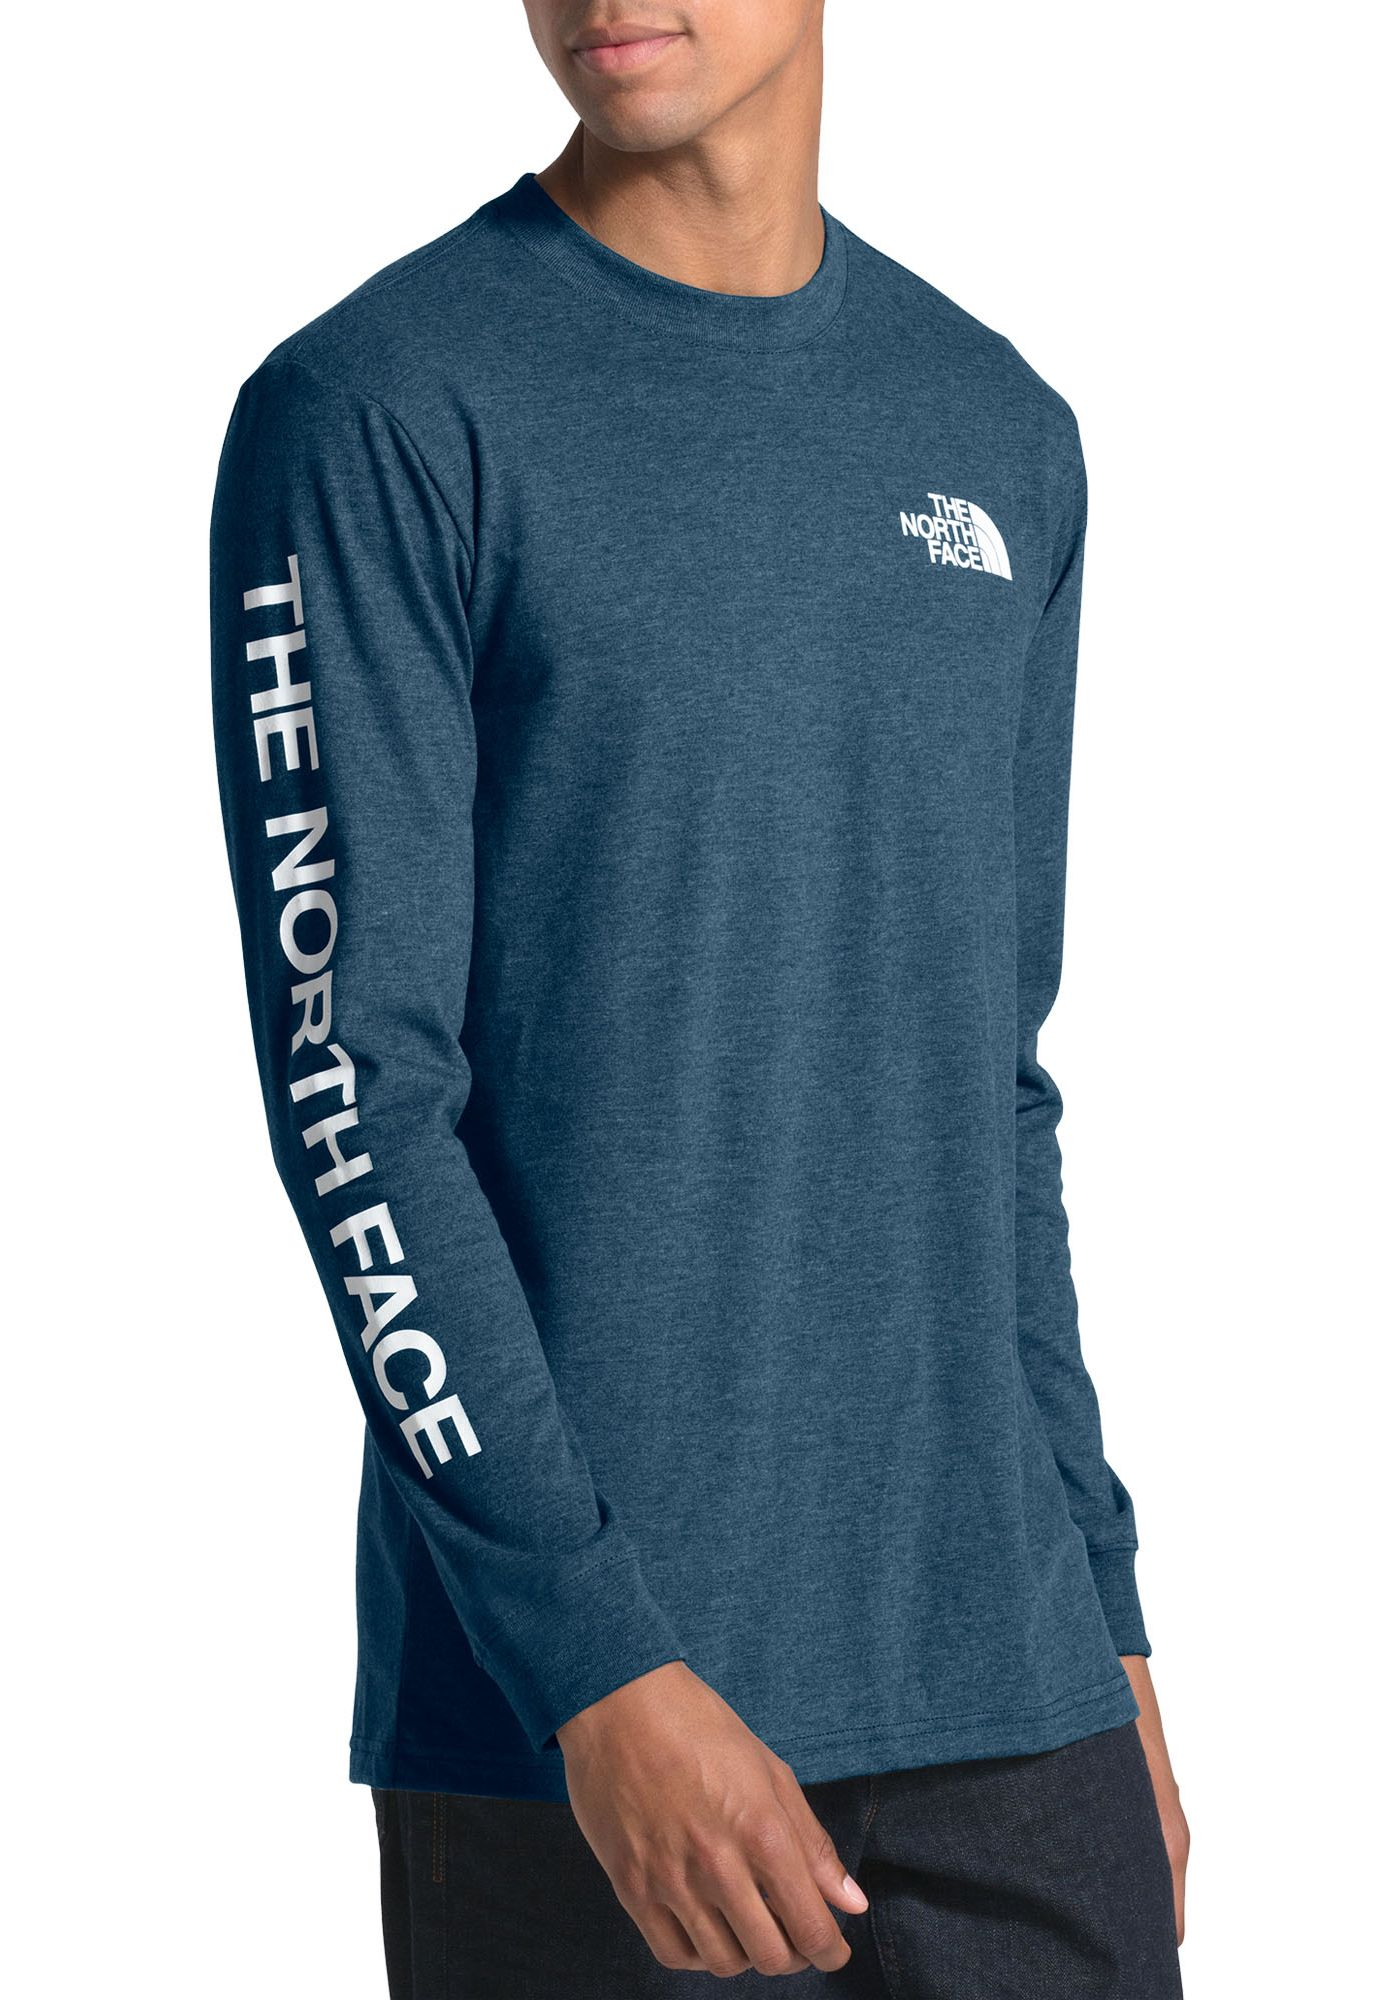 The North Face Men's Brand Proud Cotton Fashion Long Sleeve Shirt